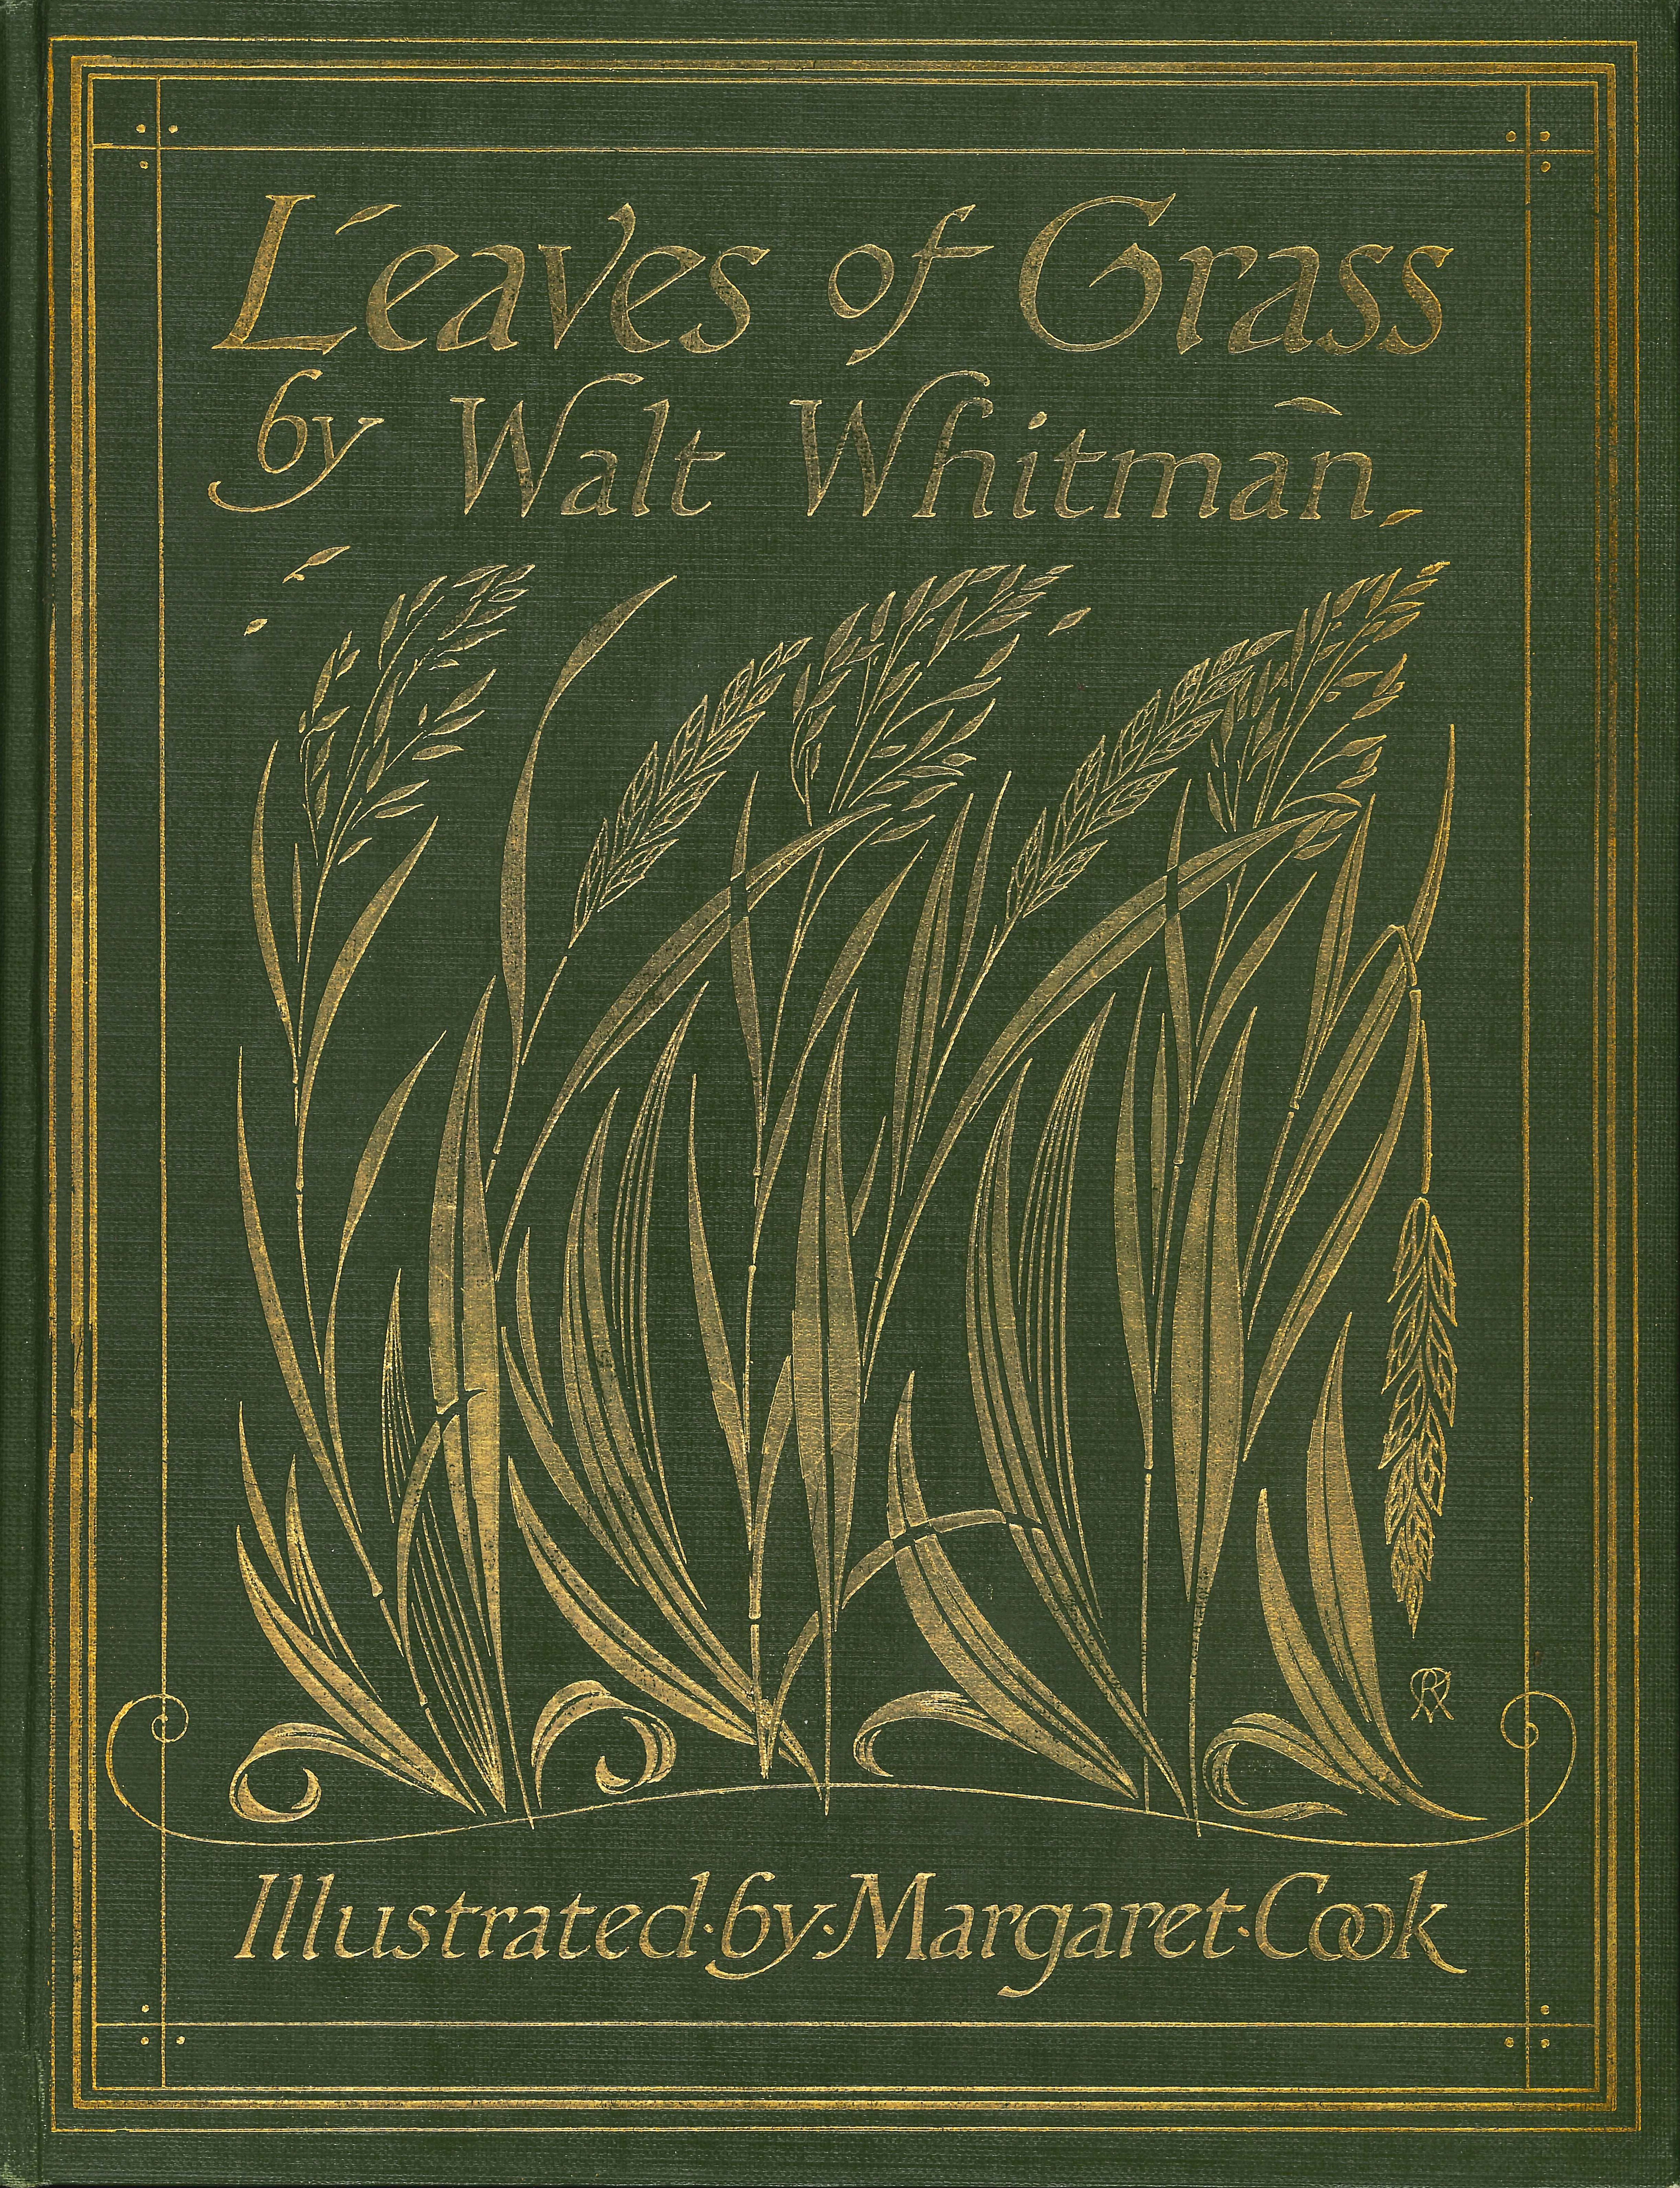 Walt Whitman. Poems from Leaves of Grass. Illustrations by Margaret C. Cook. London: J.M. Dent; New York: E.P. Dutton & Co., 1913.